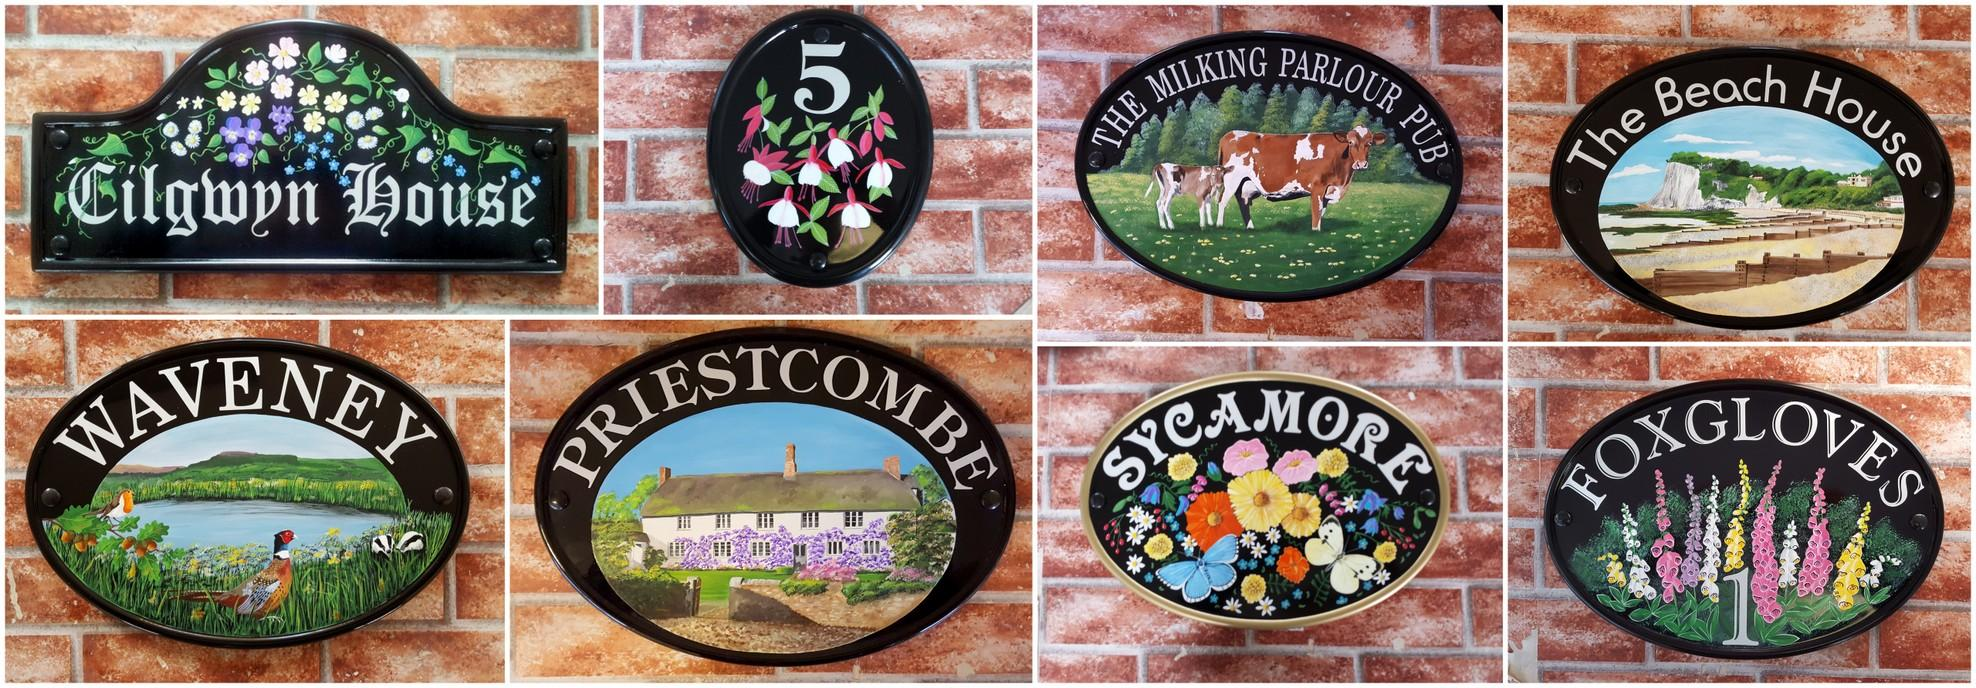 Collage depicting hand painted house signs